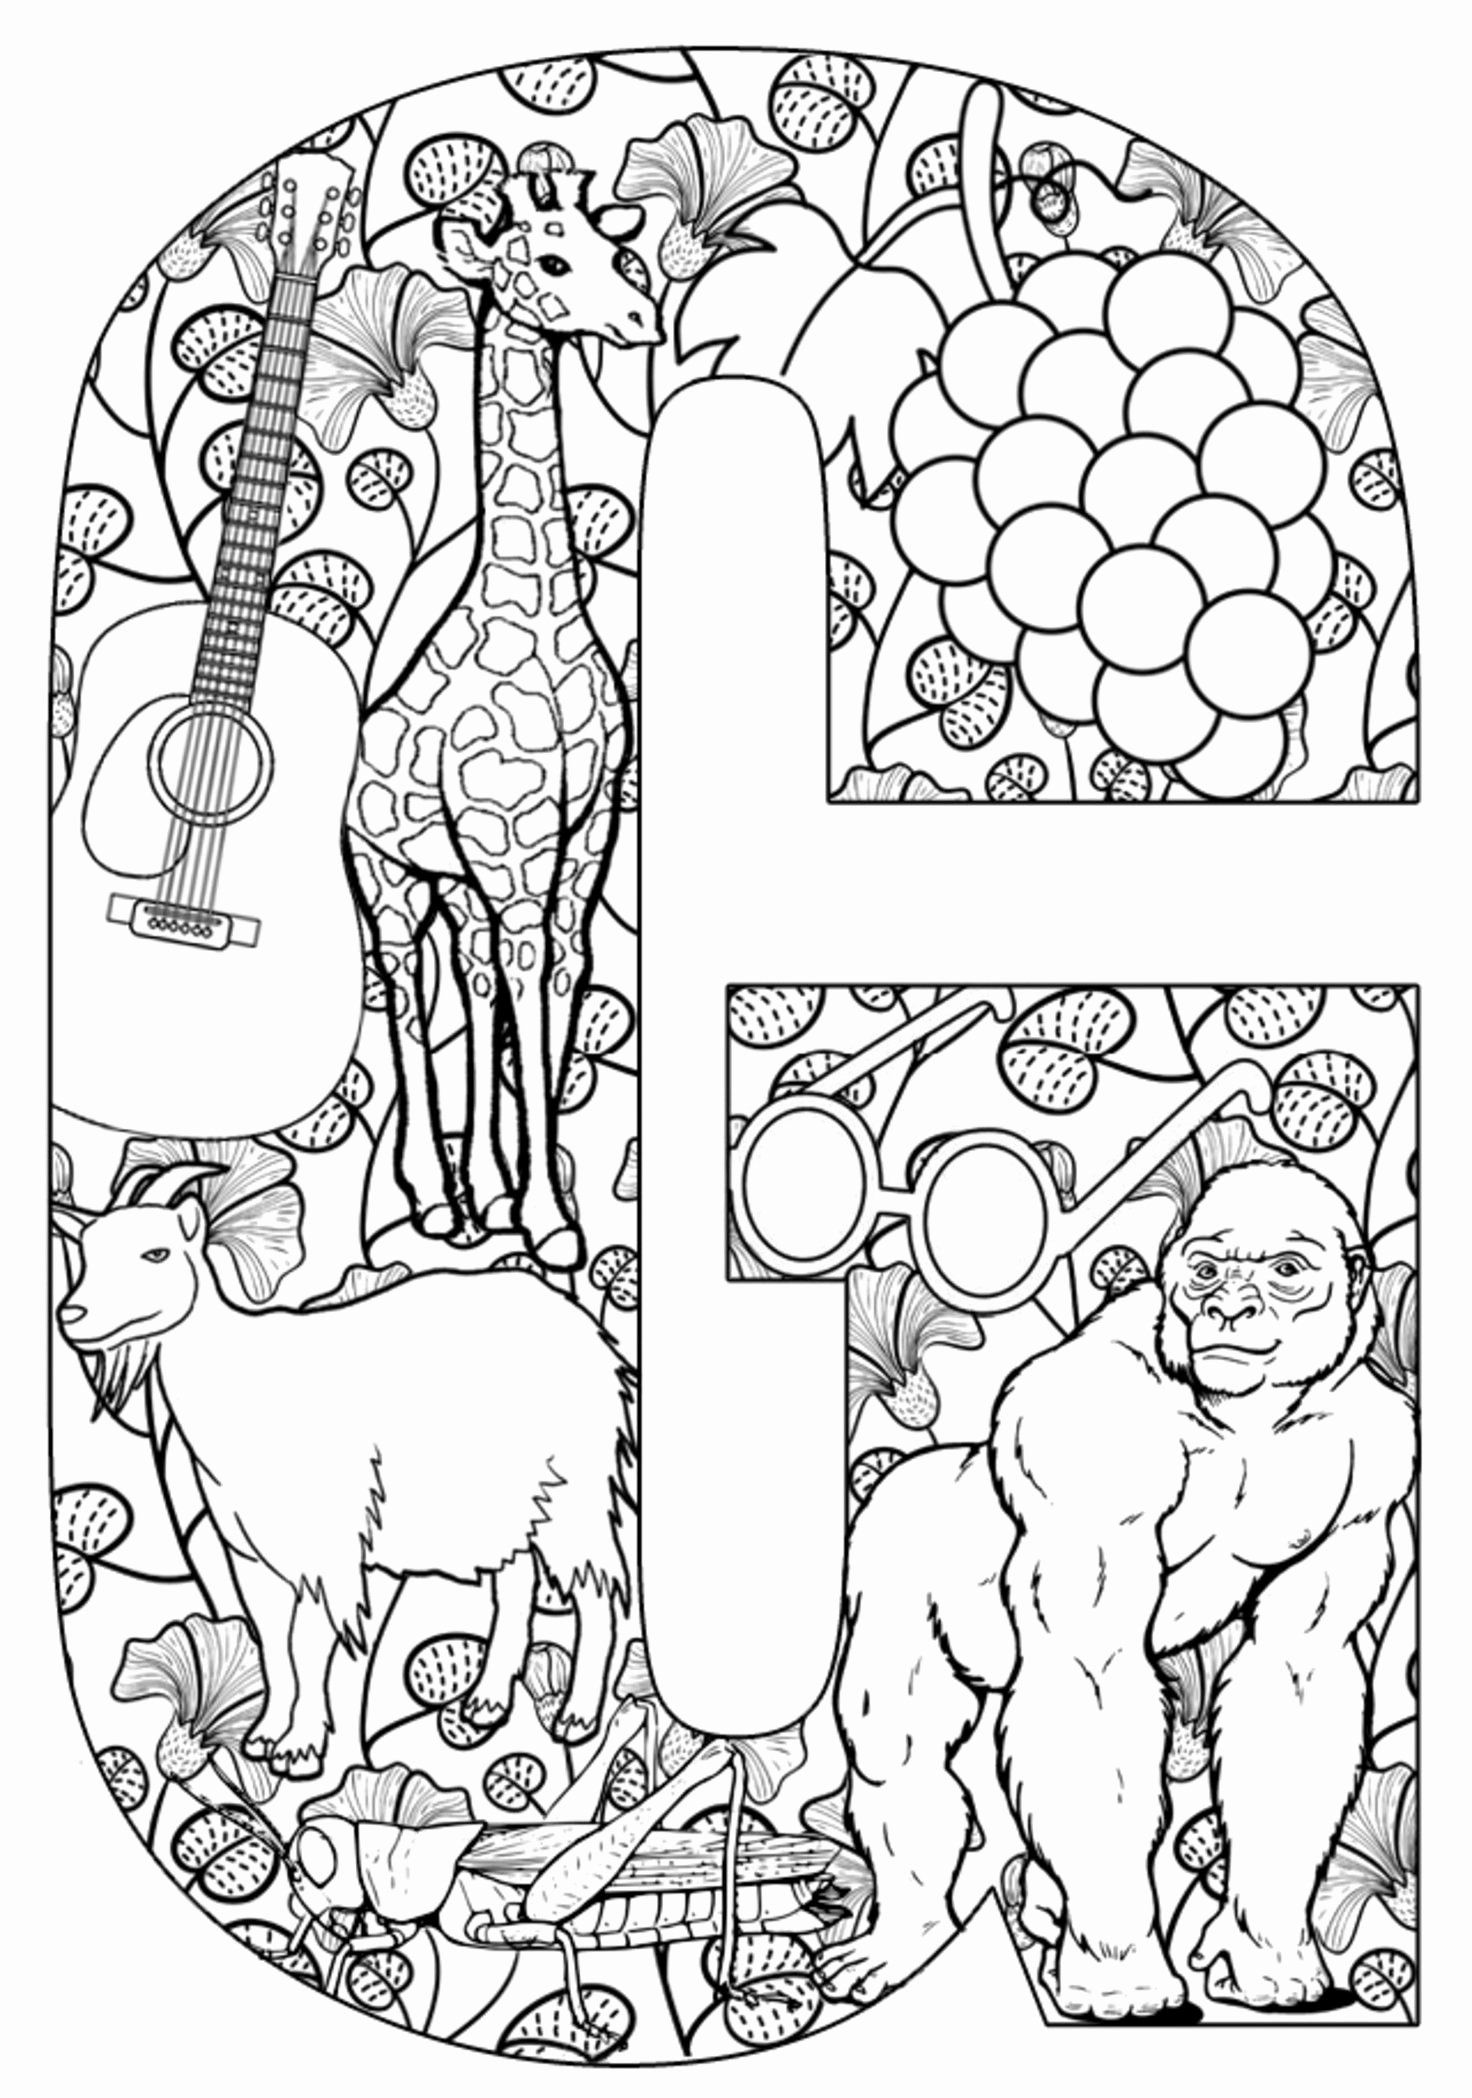 Coloring Pages Alphabet Printable Awesome Coloring